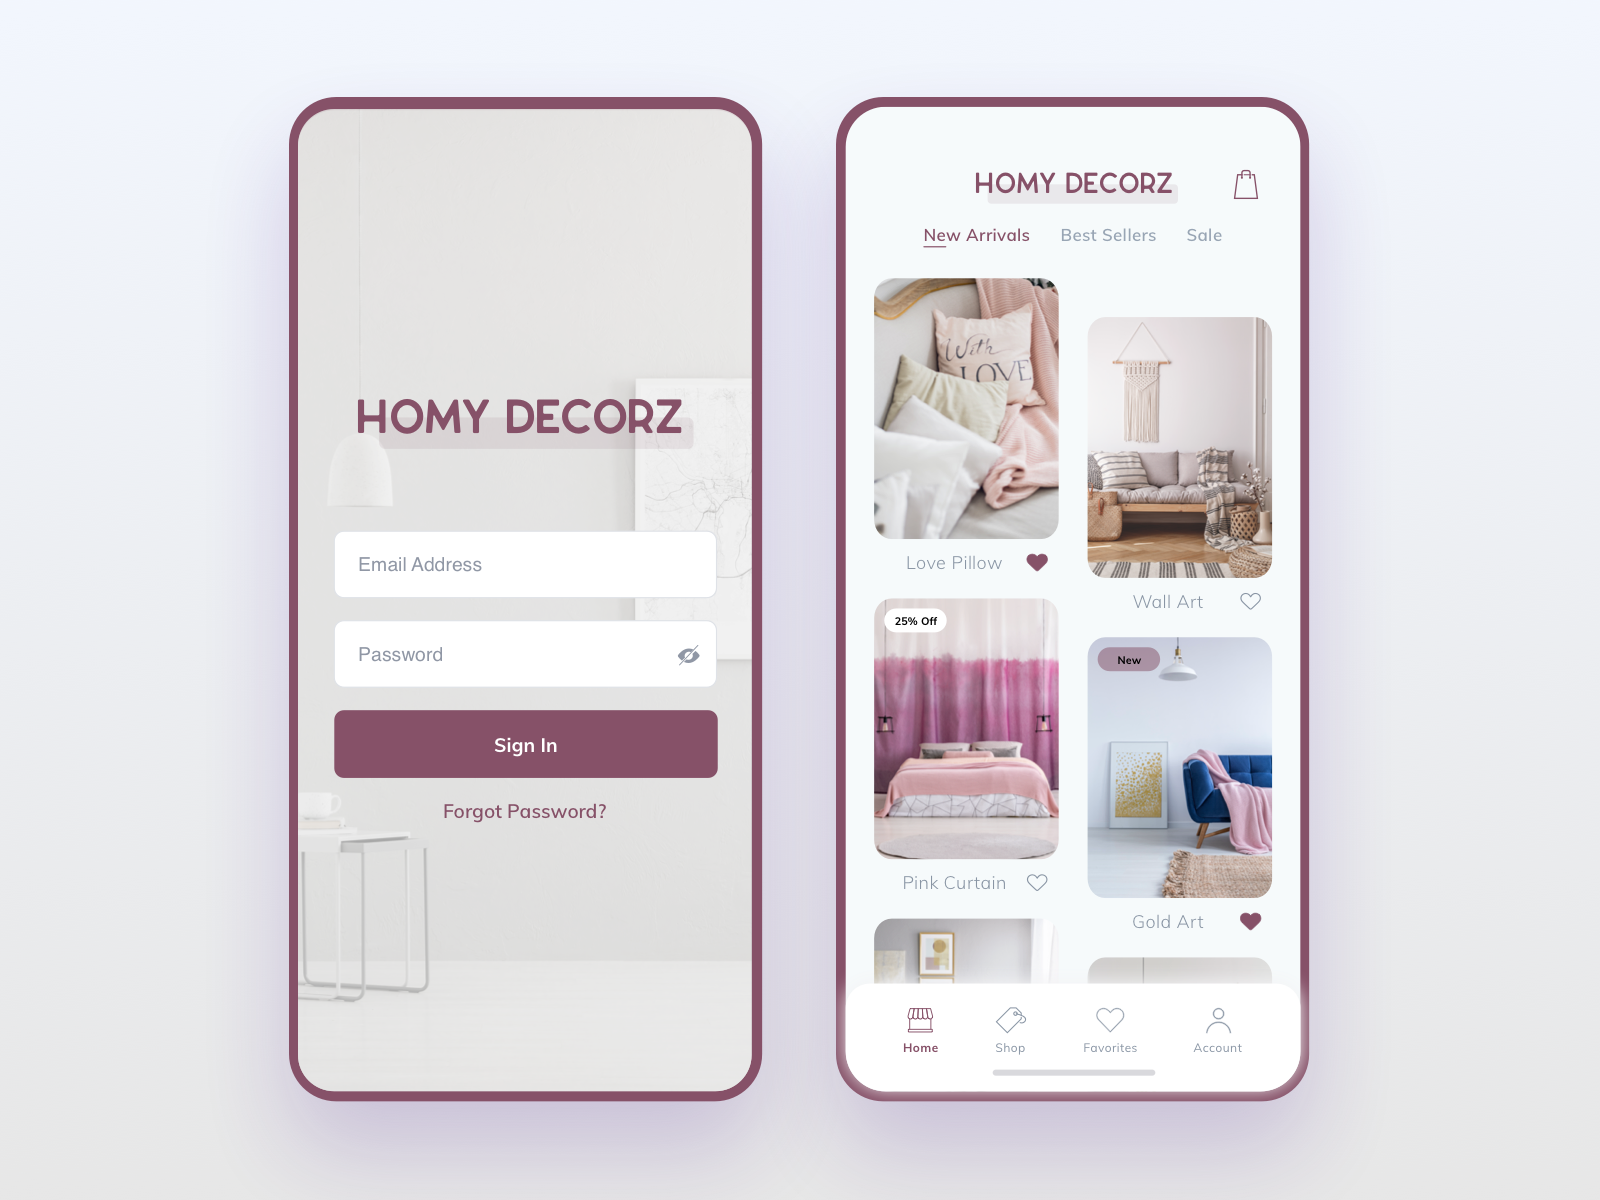 Home Decor Ecommerce App Design By Raydezyn On Dribbble